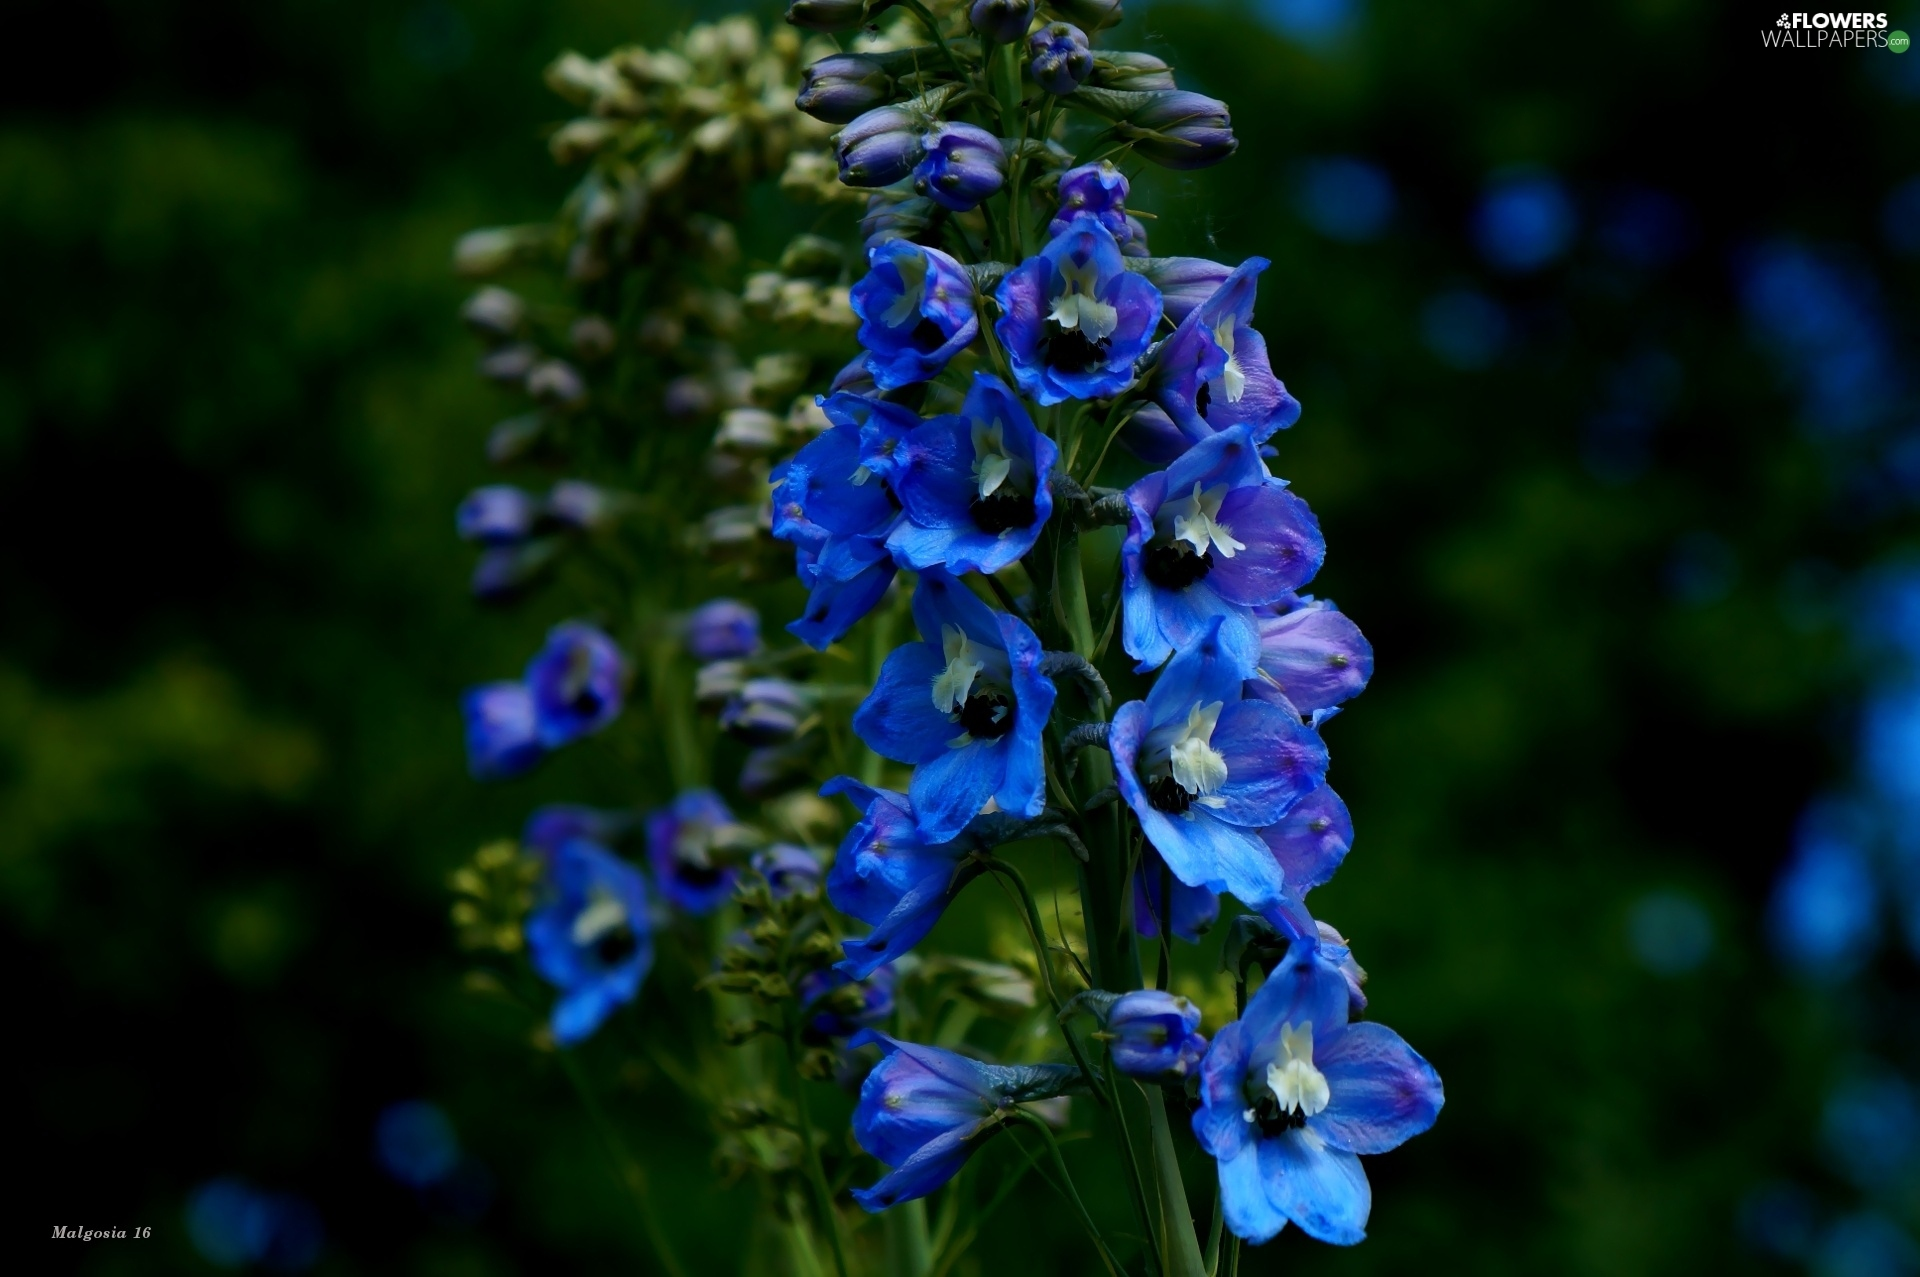 Flowers, garden, Blue, larkspur